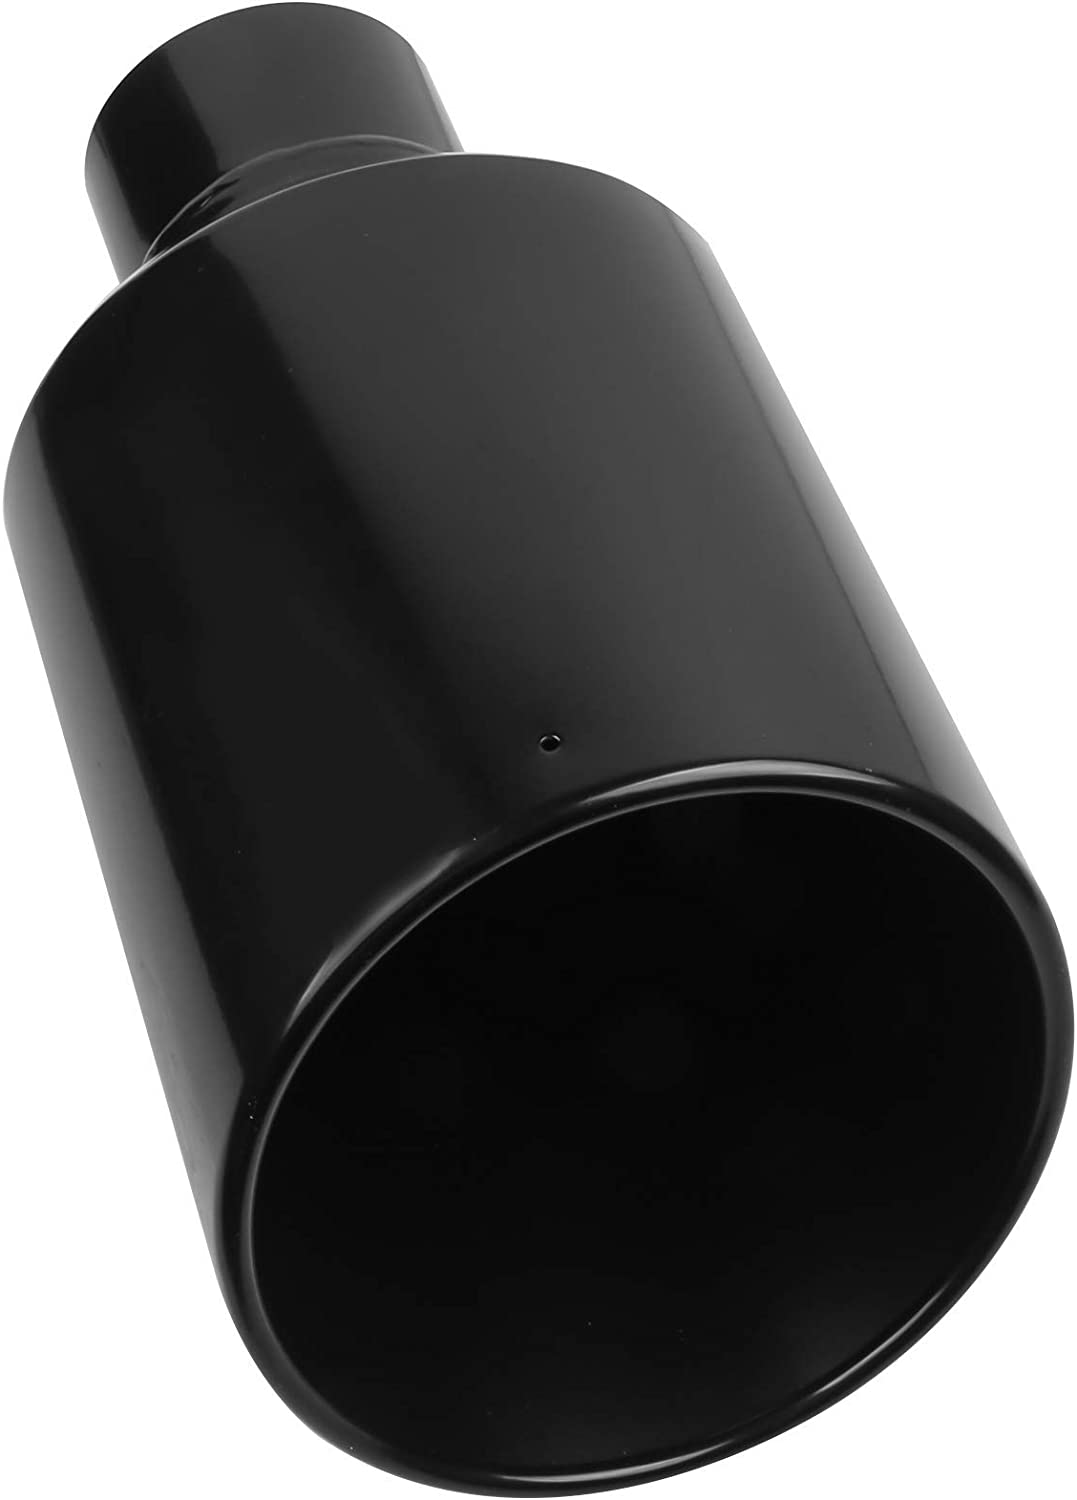 MOSTPLUS Truck Diesel Exhaust Tip Black Stainless Steel Tailpipe Tip 4 Inlet; 8 Outlet; 15 Length